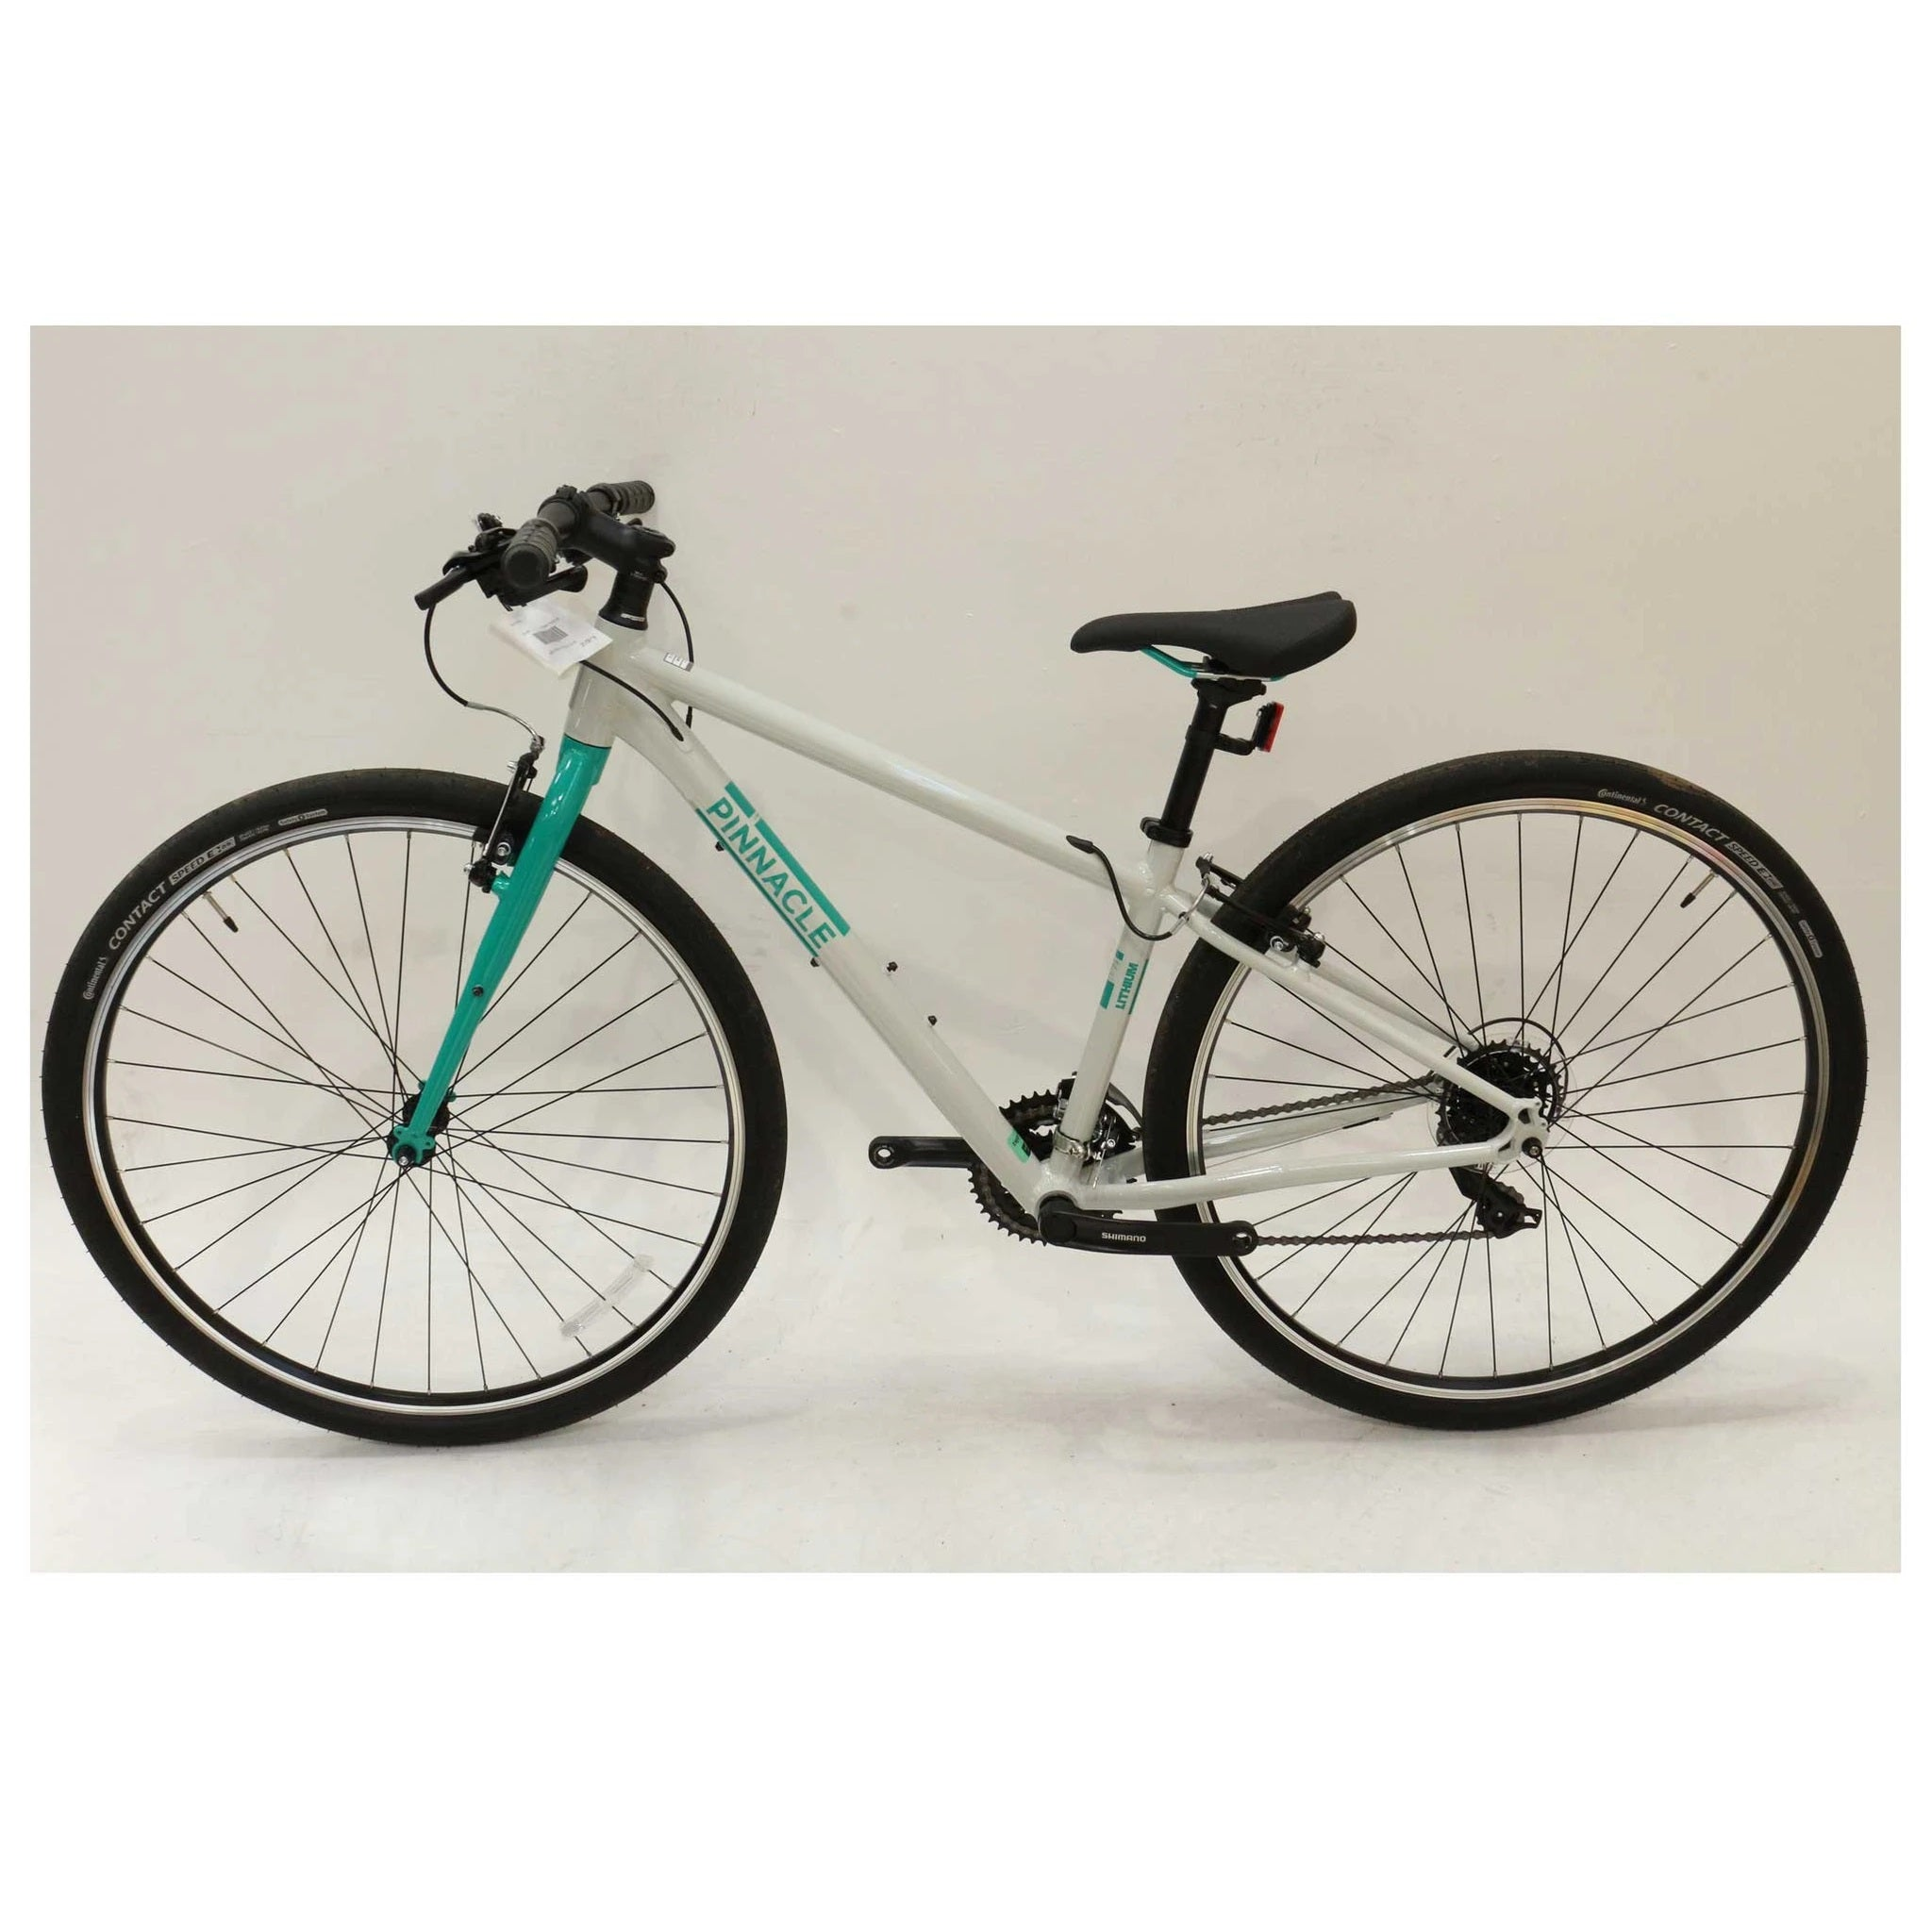 Pinnacle Lithium 2 Women's Hybrid Bike Collection Only Preowned